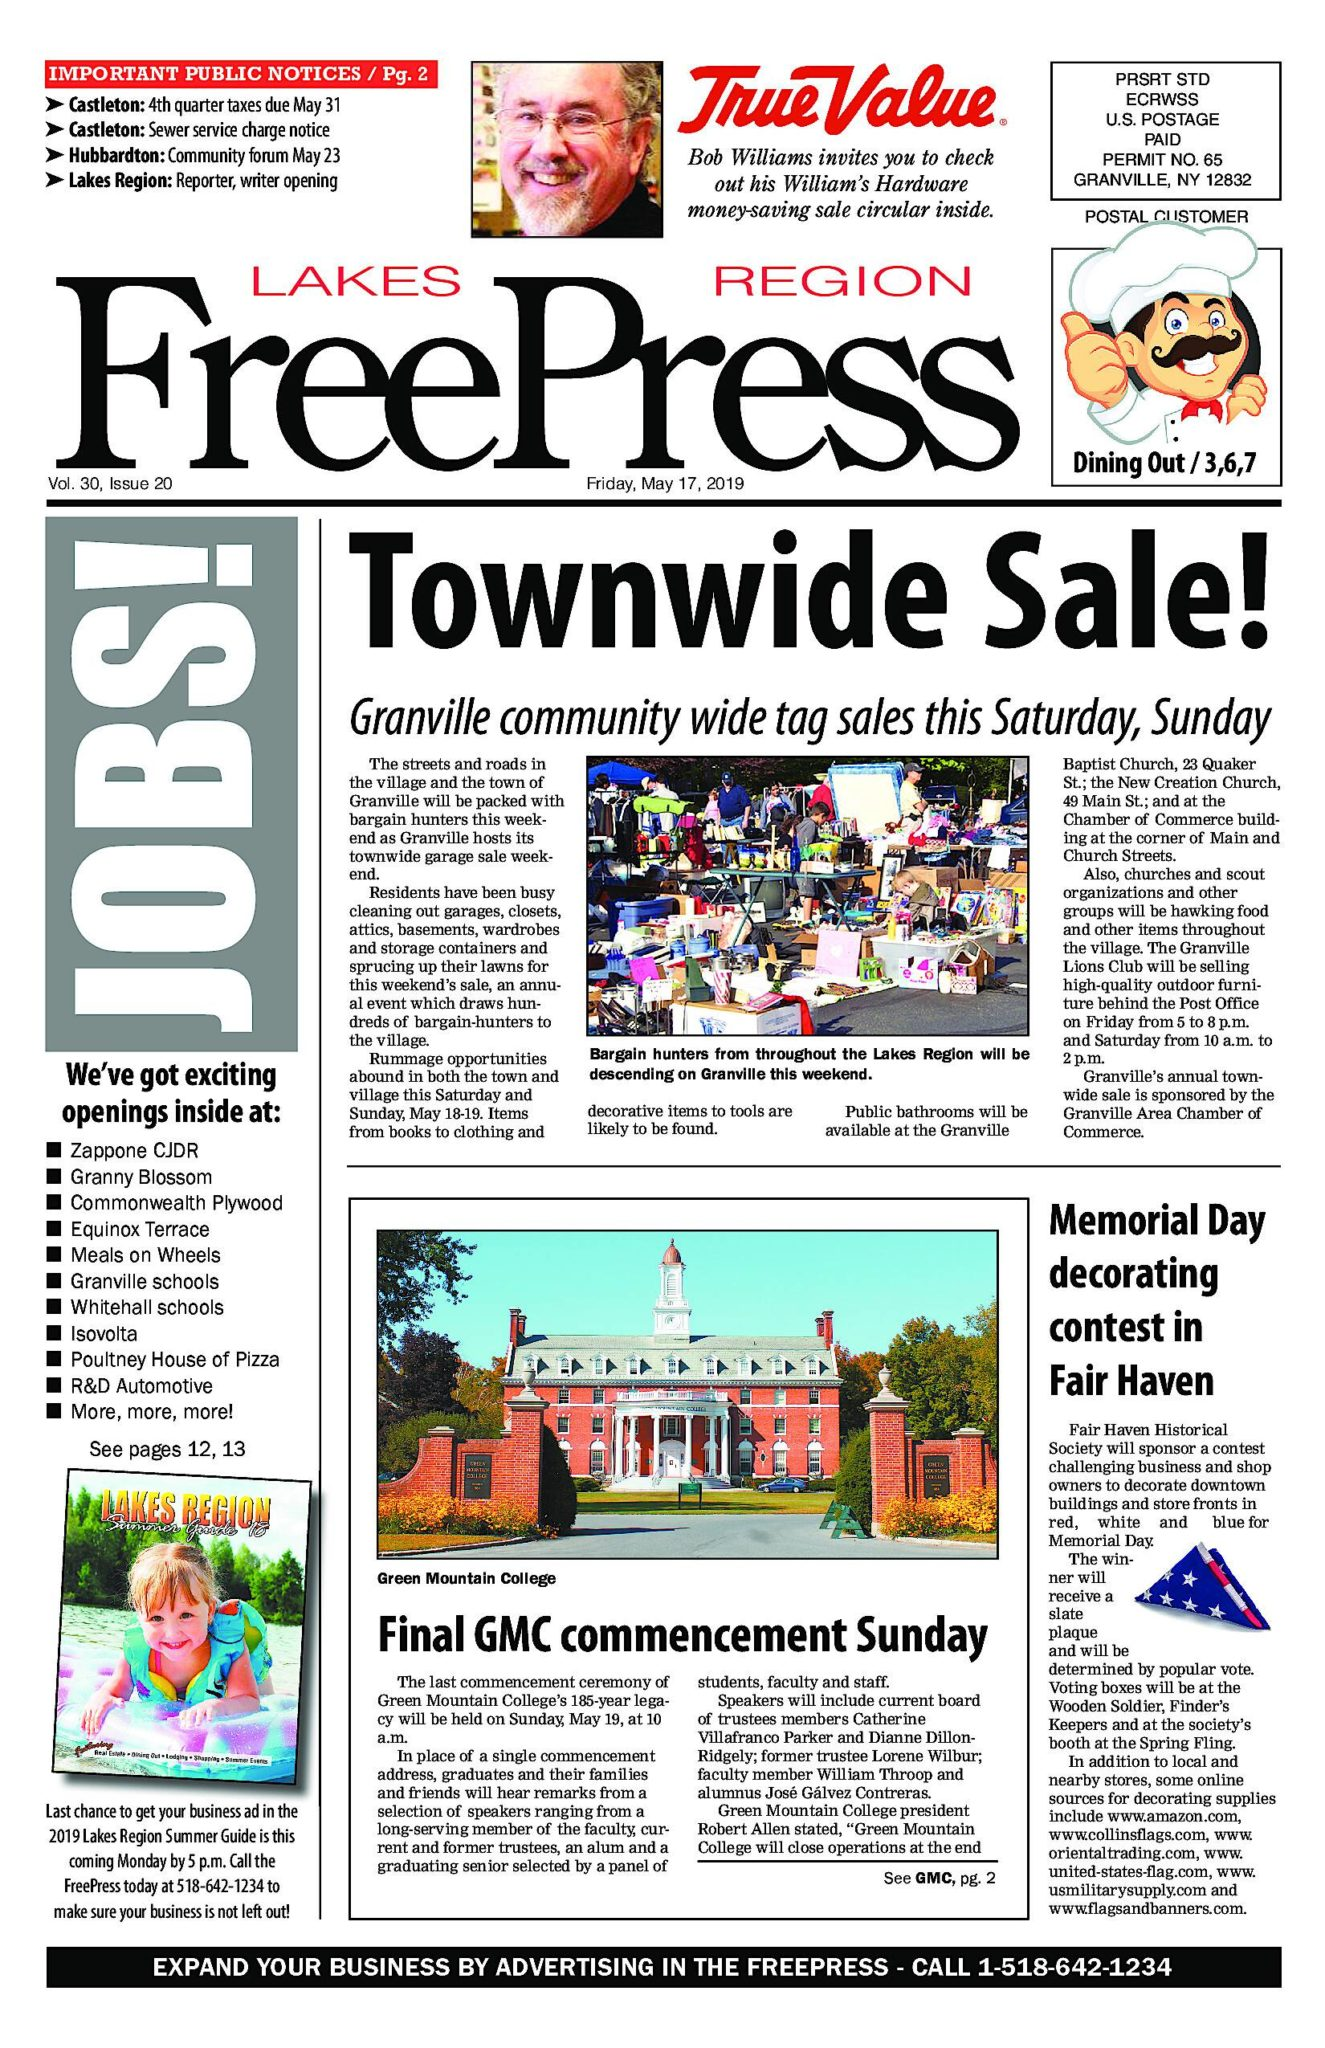 Lakes Region Freepress – 05/17/19